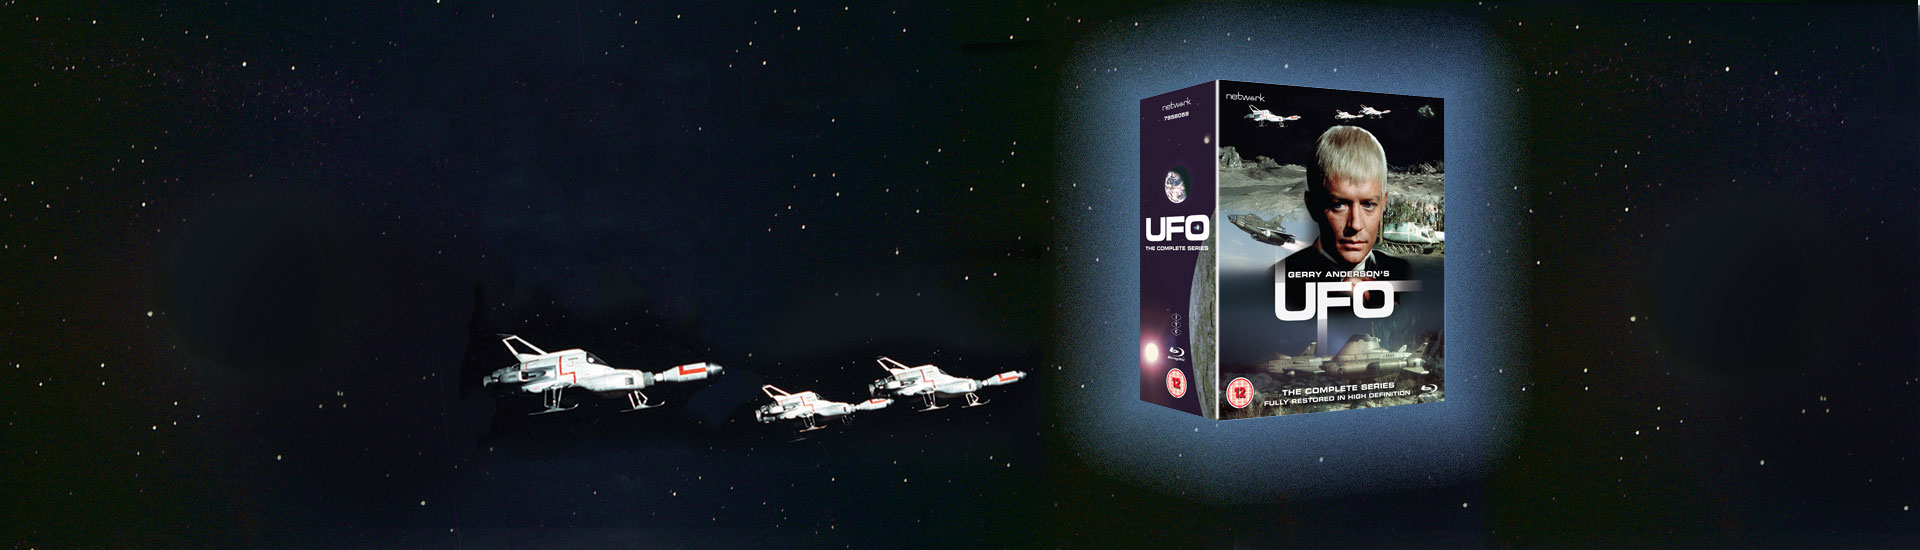 UFO: The Complete Series [Pre-buy]